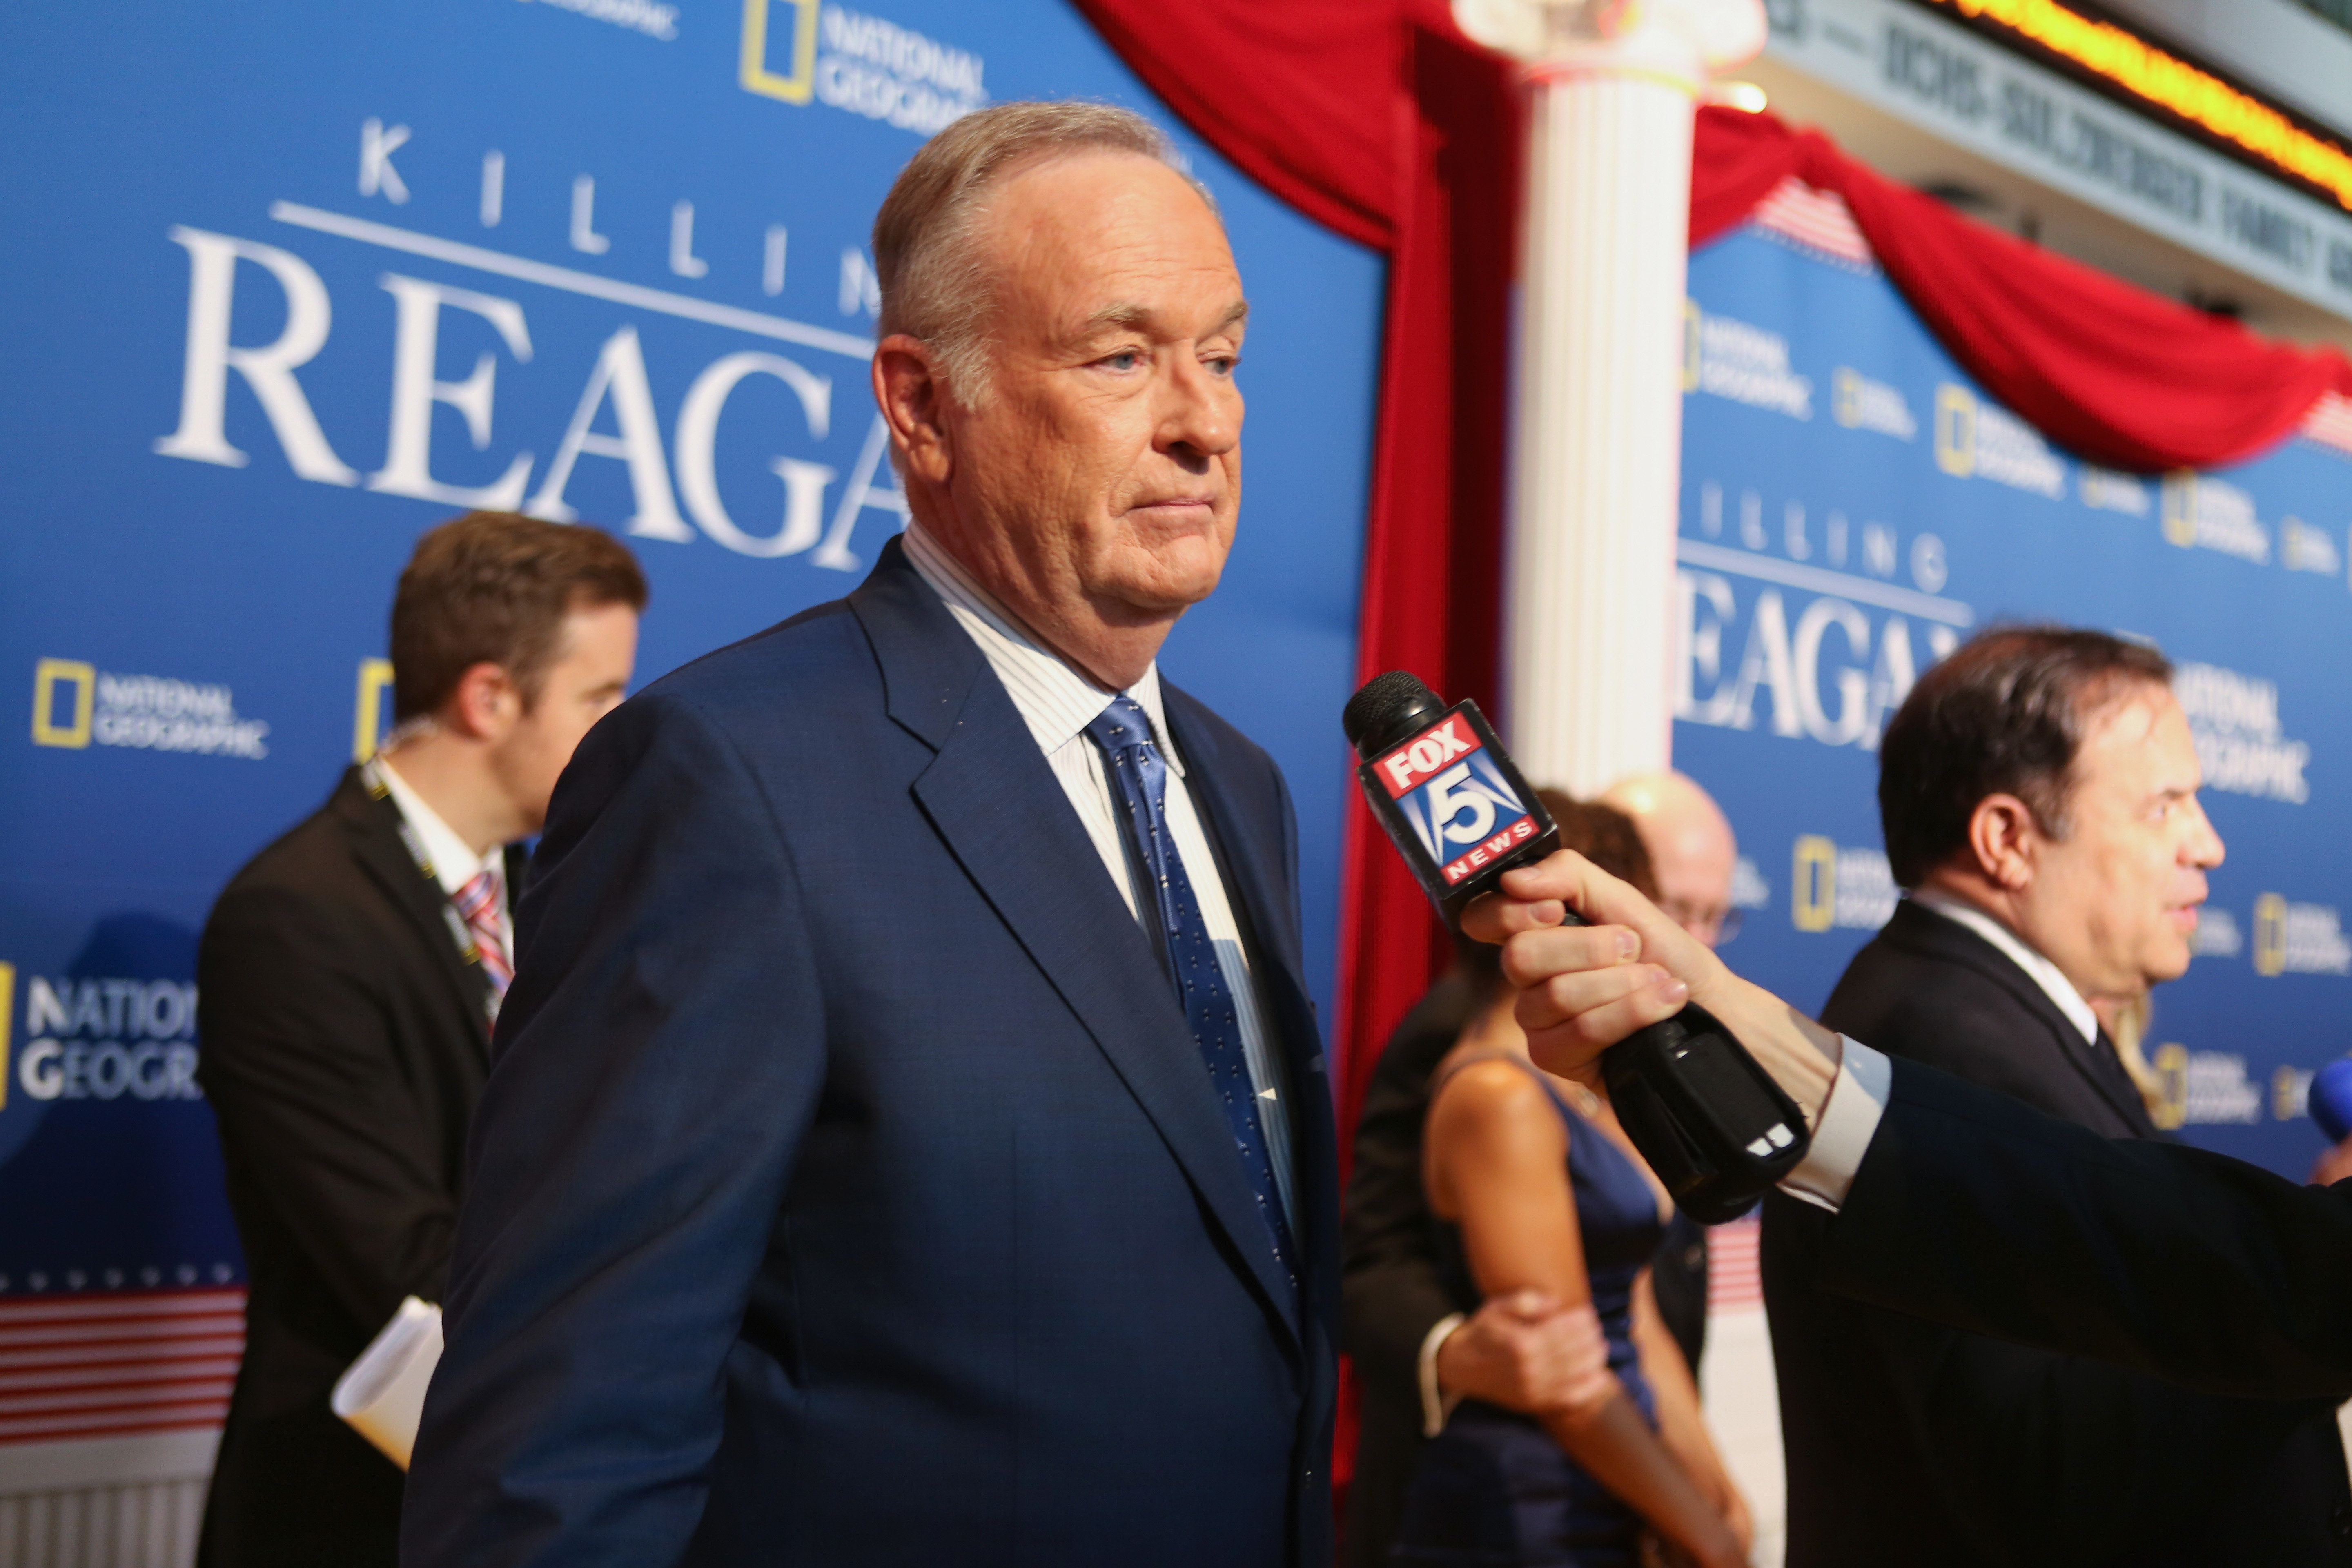 Fox News host Bill O'Reilly has a long history of offensive remarks.